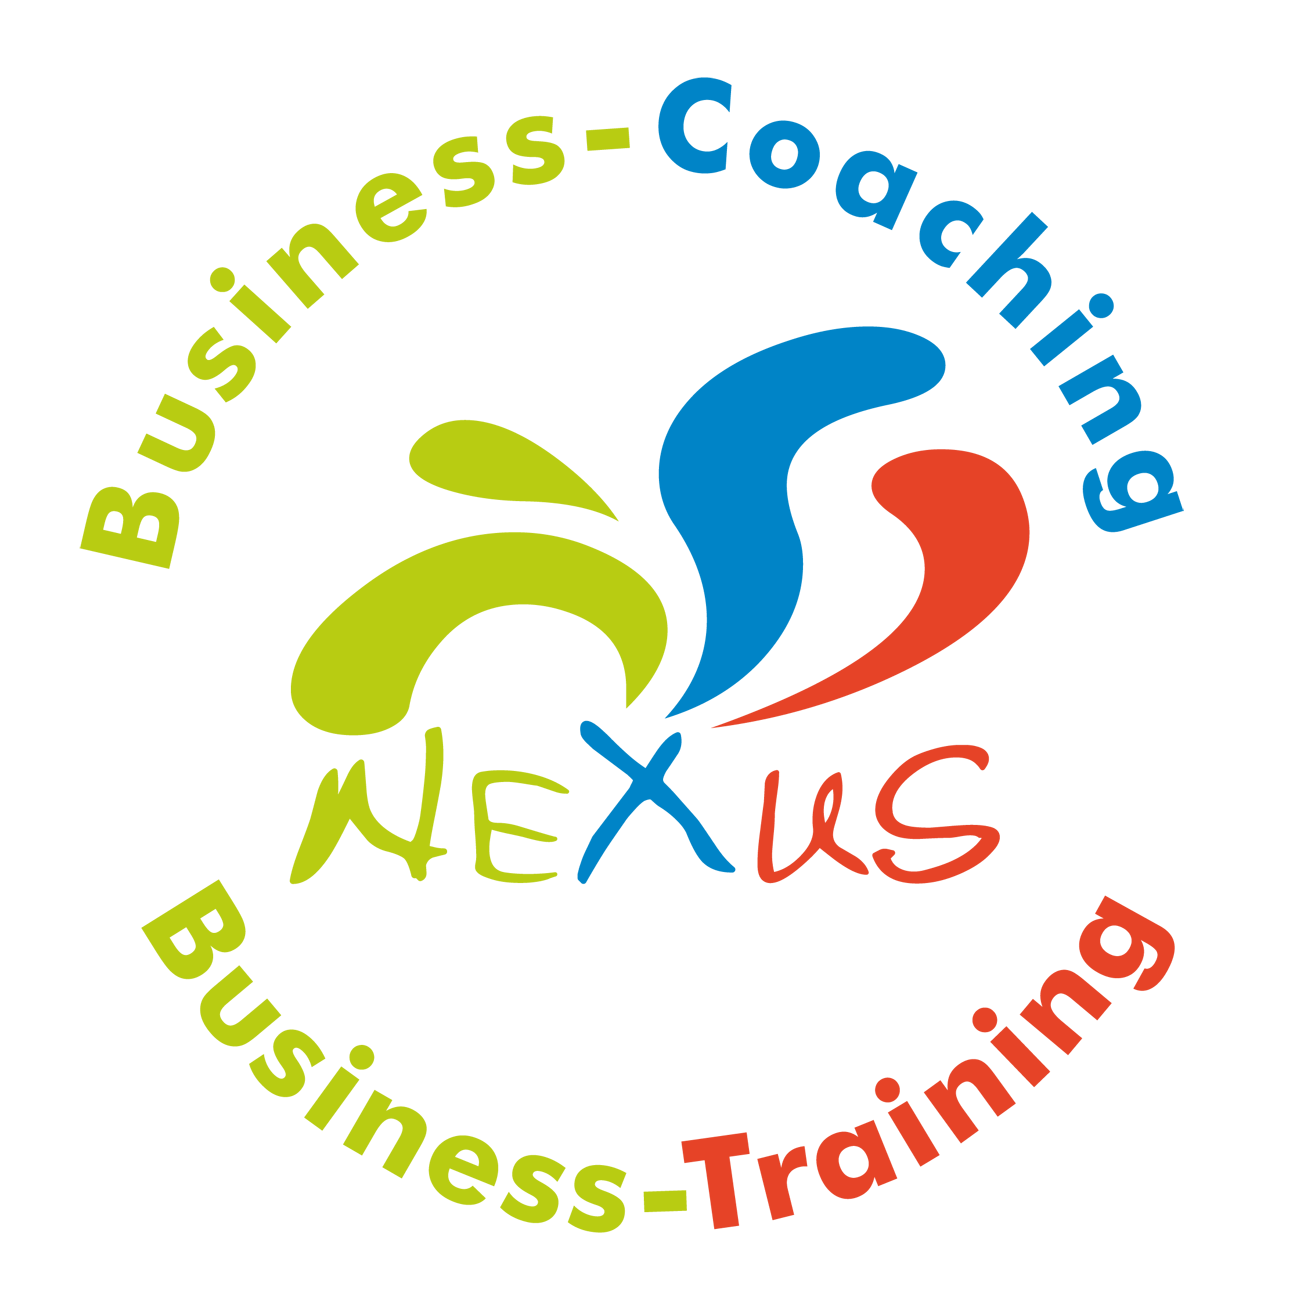 Business-Coaching Luxemburg Stadt, Führungskräfte-Coaching, Führungskräftetraining, Persönlichkeitstraining